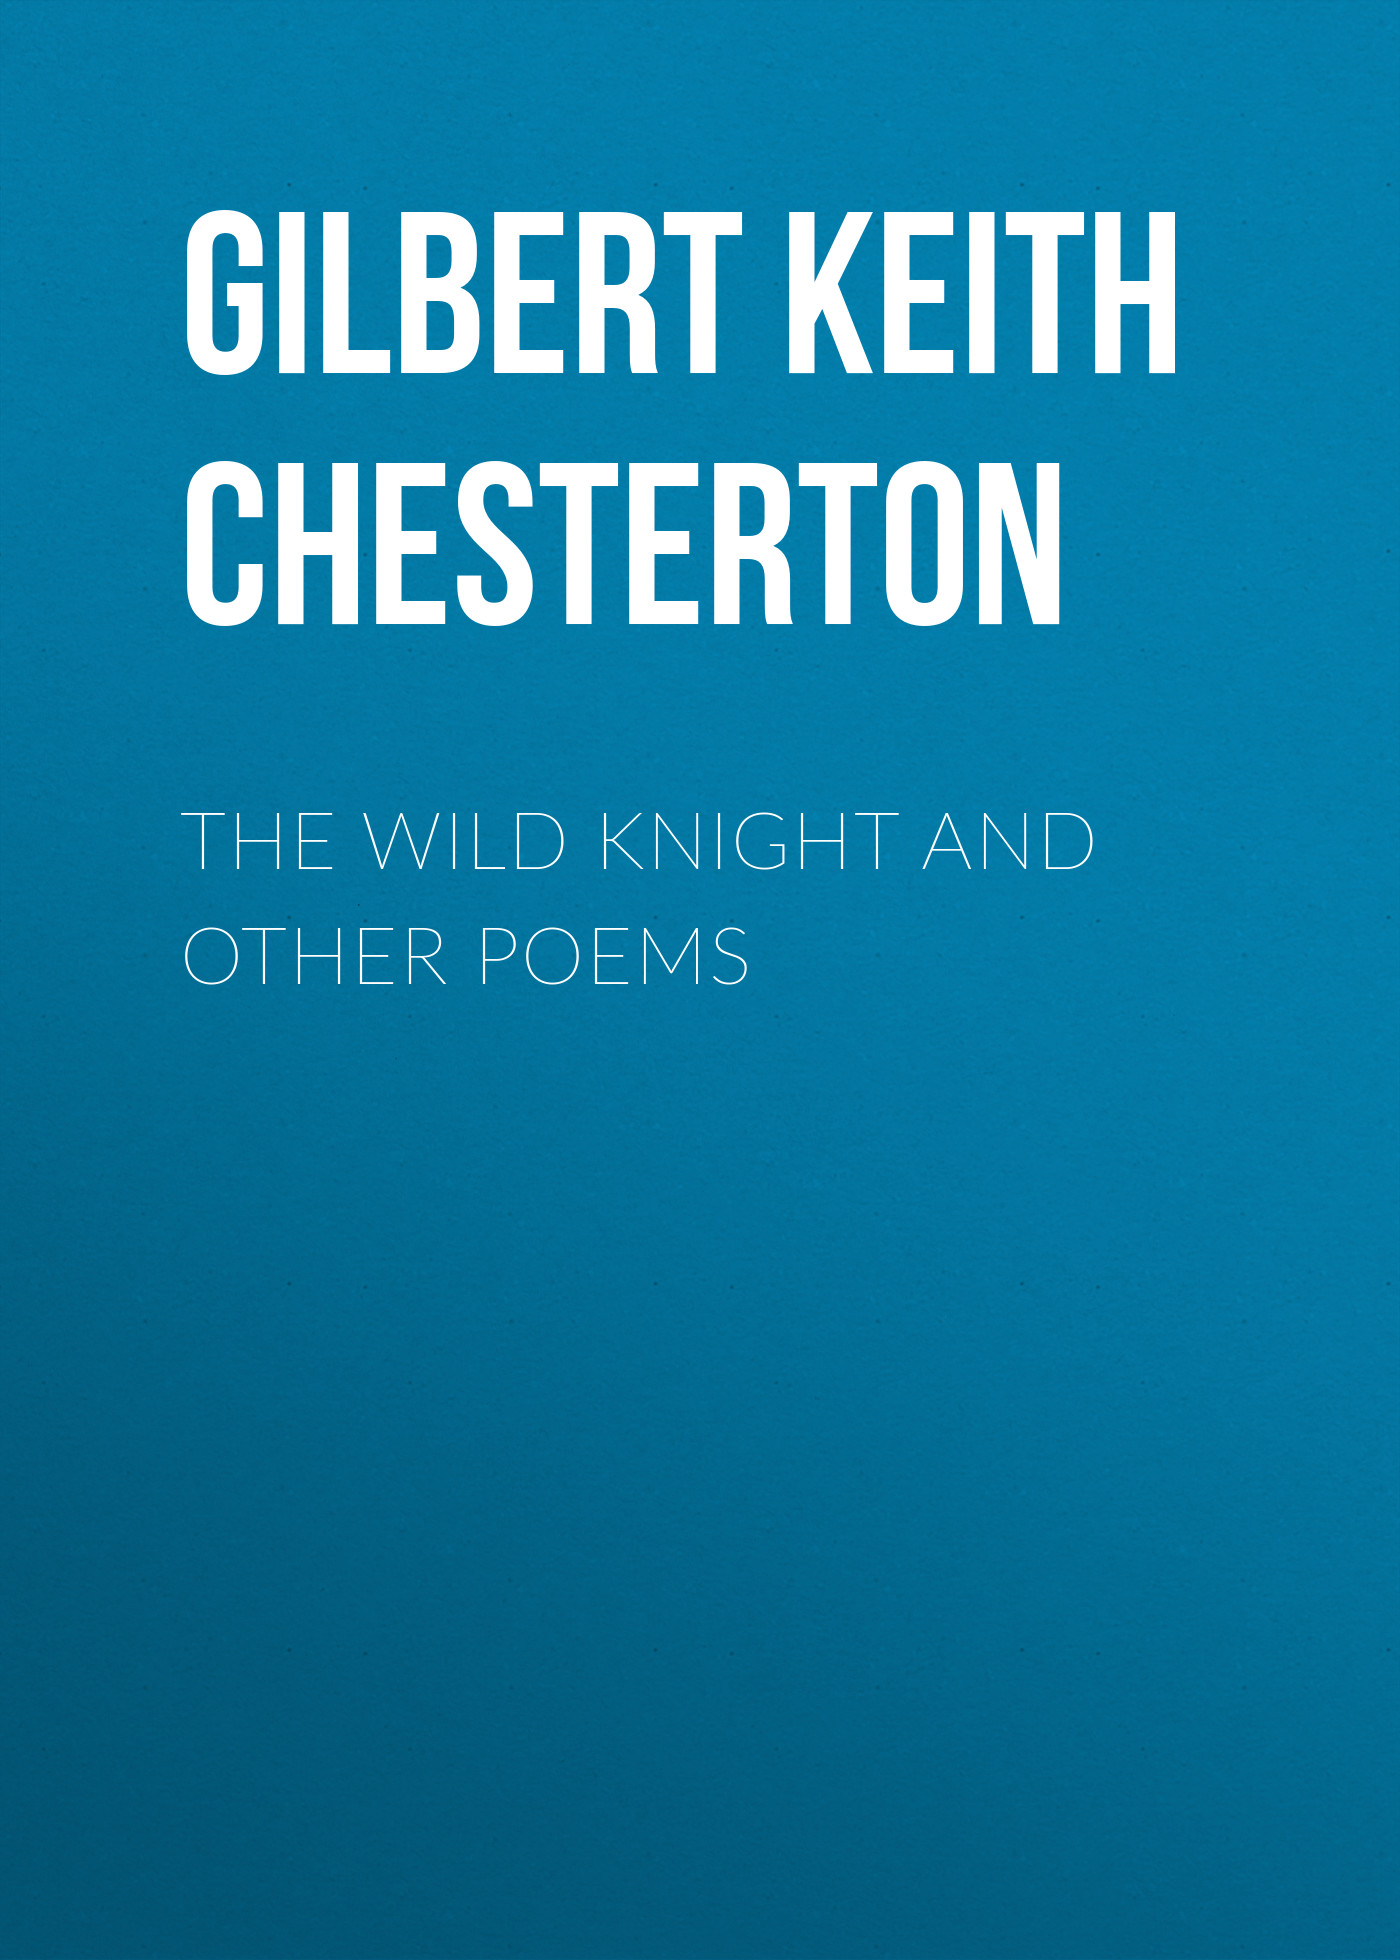 Gilbert Keith Chesterton The Wild Knight and Other Poems